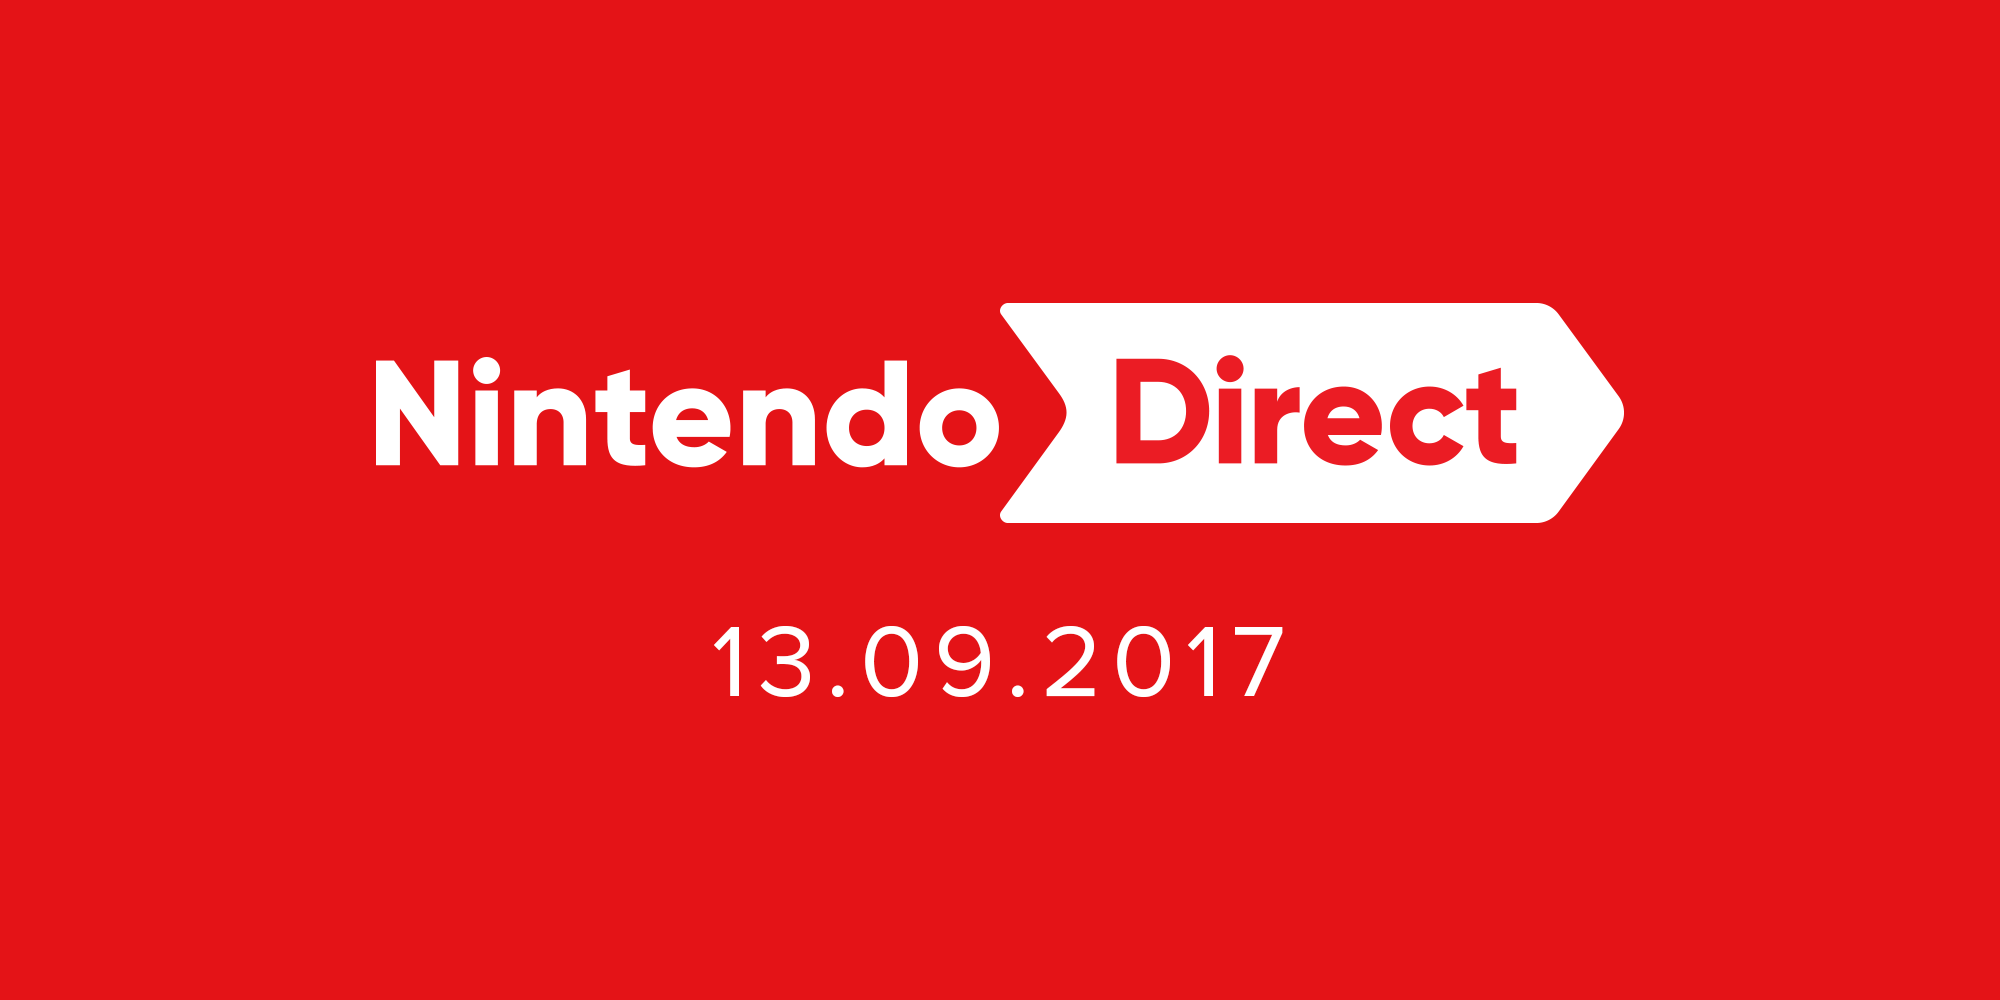 Nintendo Direct Coming Your Way on September 13